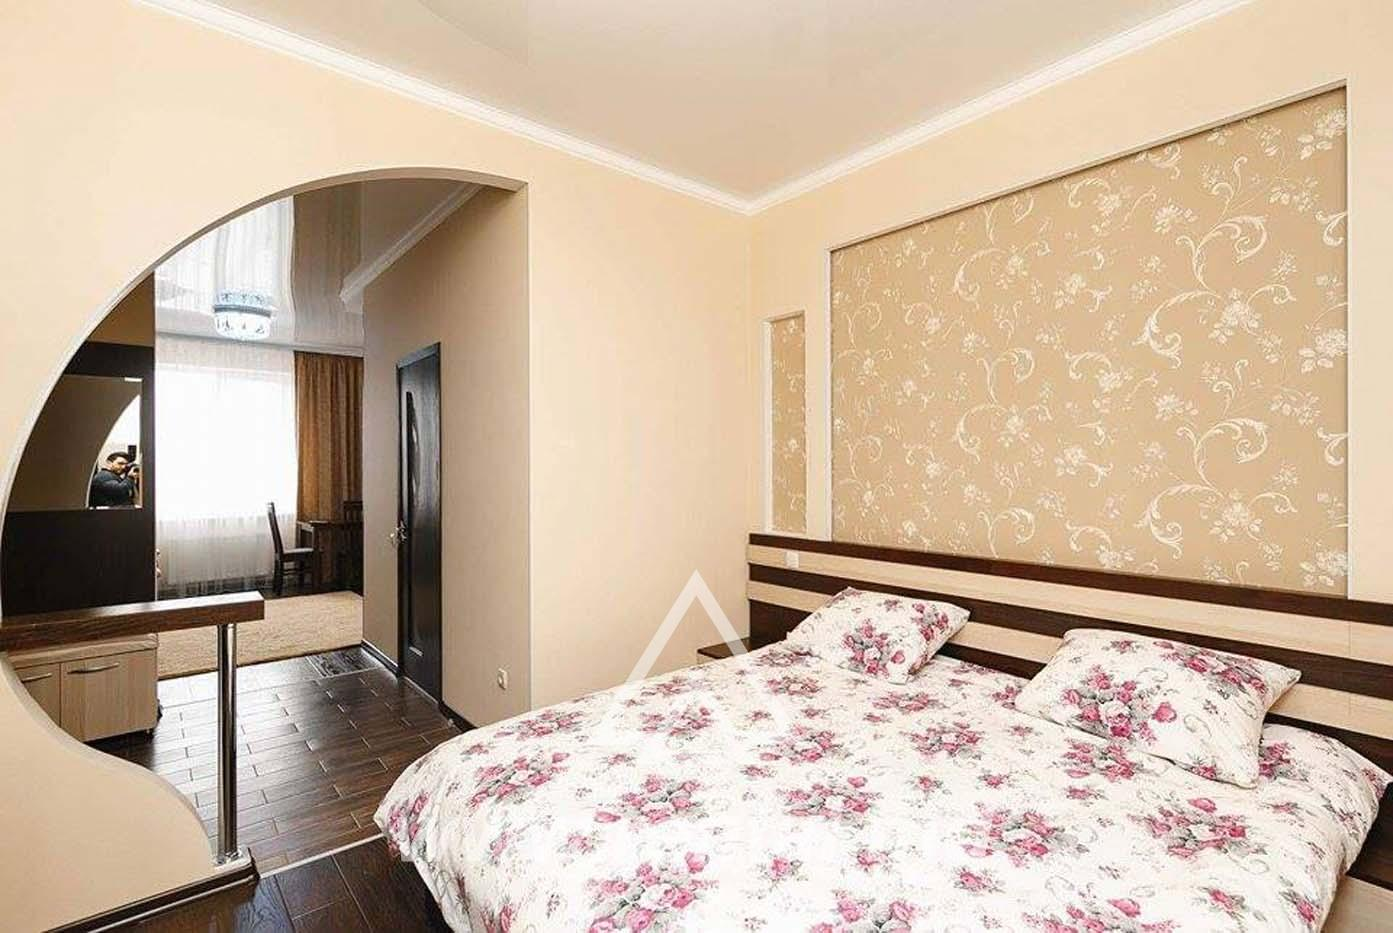 Apartment for rent in the Center